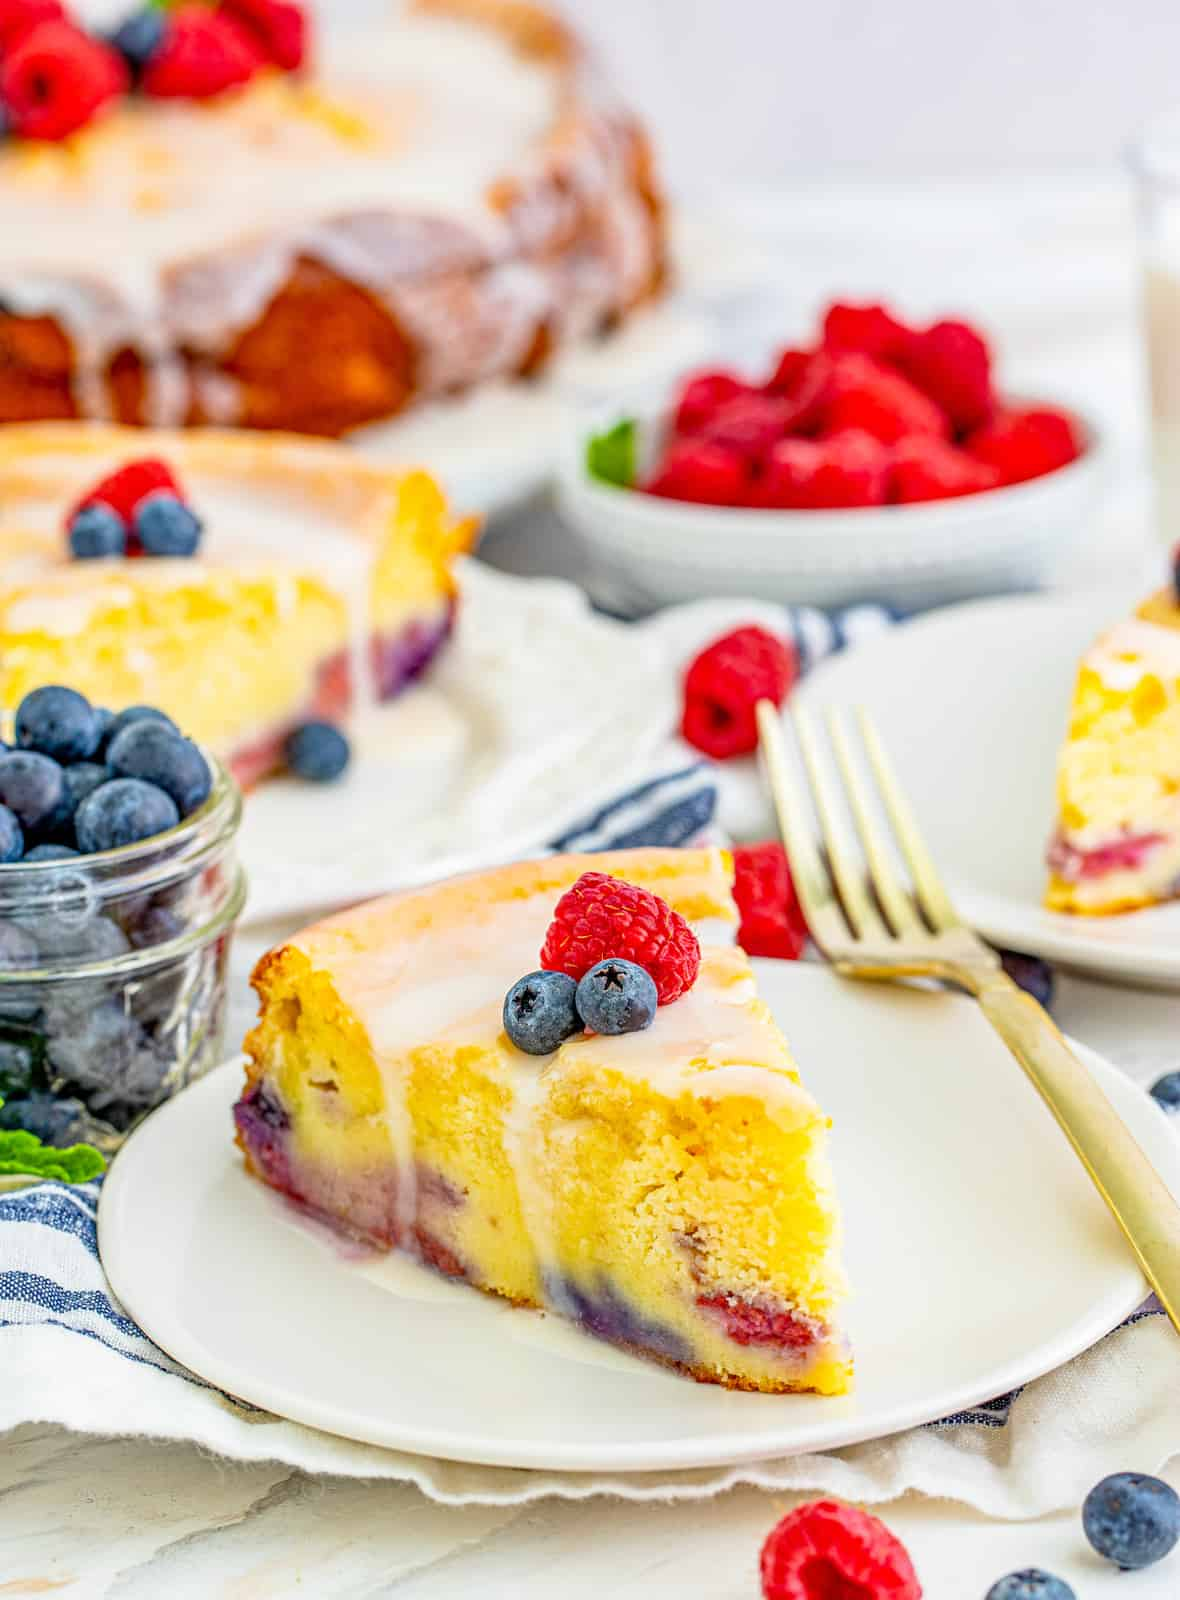 Slices of Berry Ricotta Cake Ono plates topped with glaze and fruit